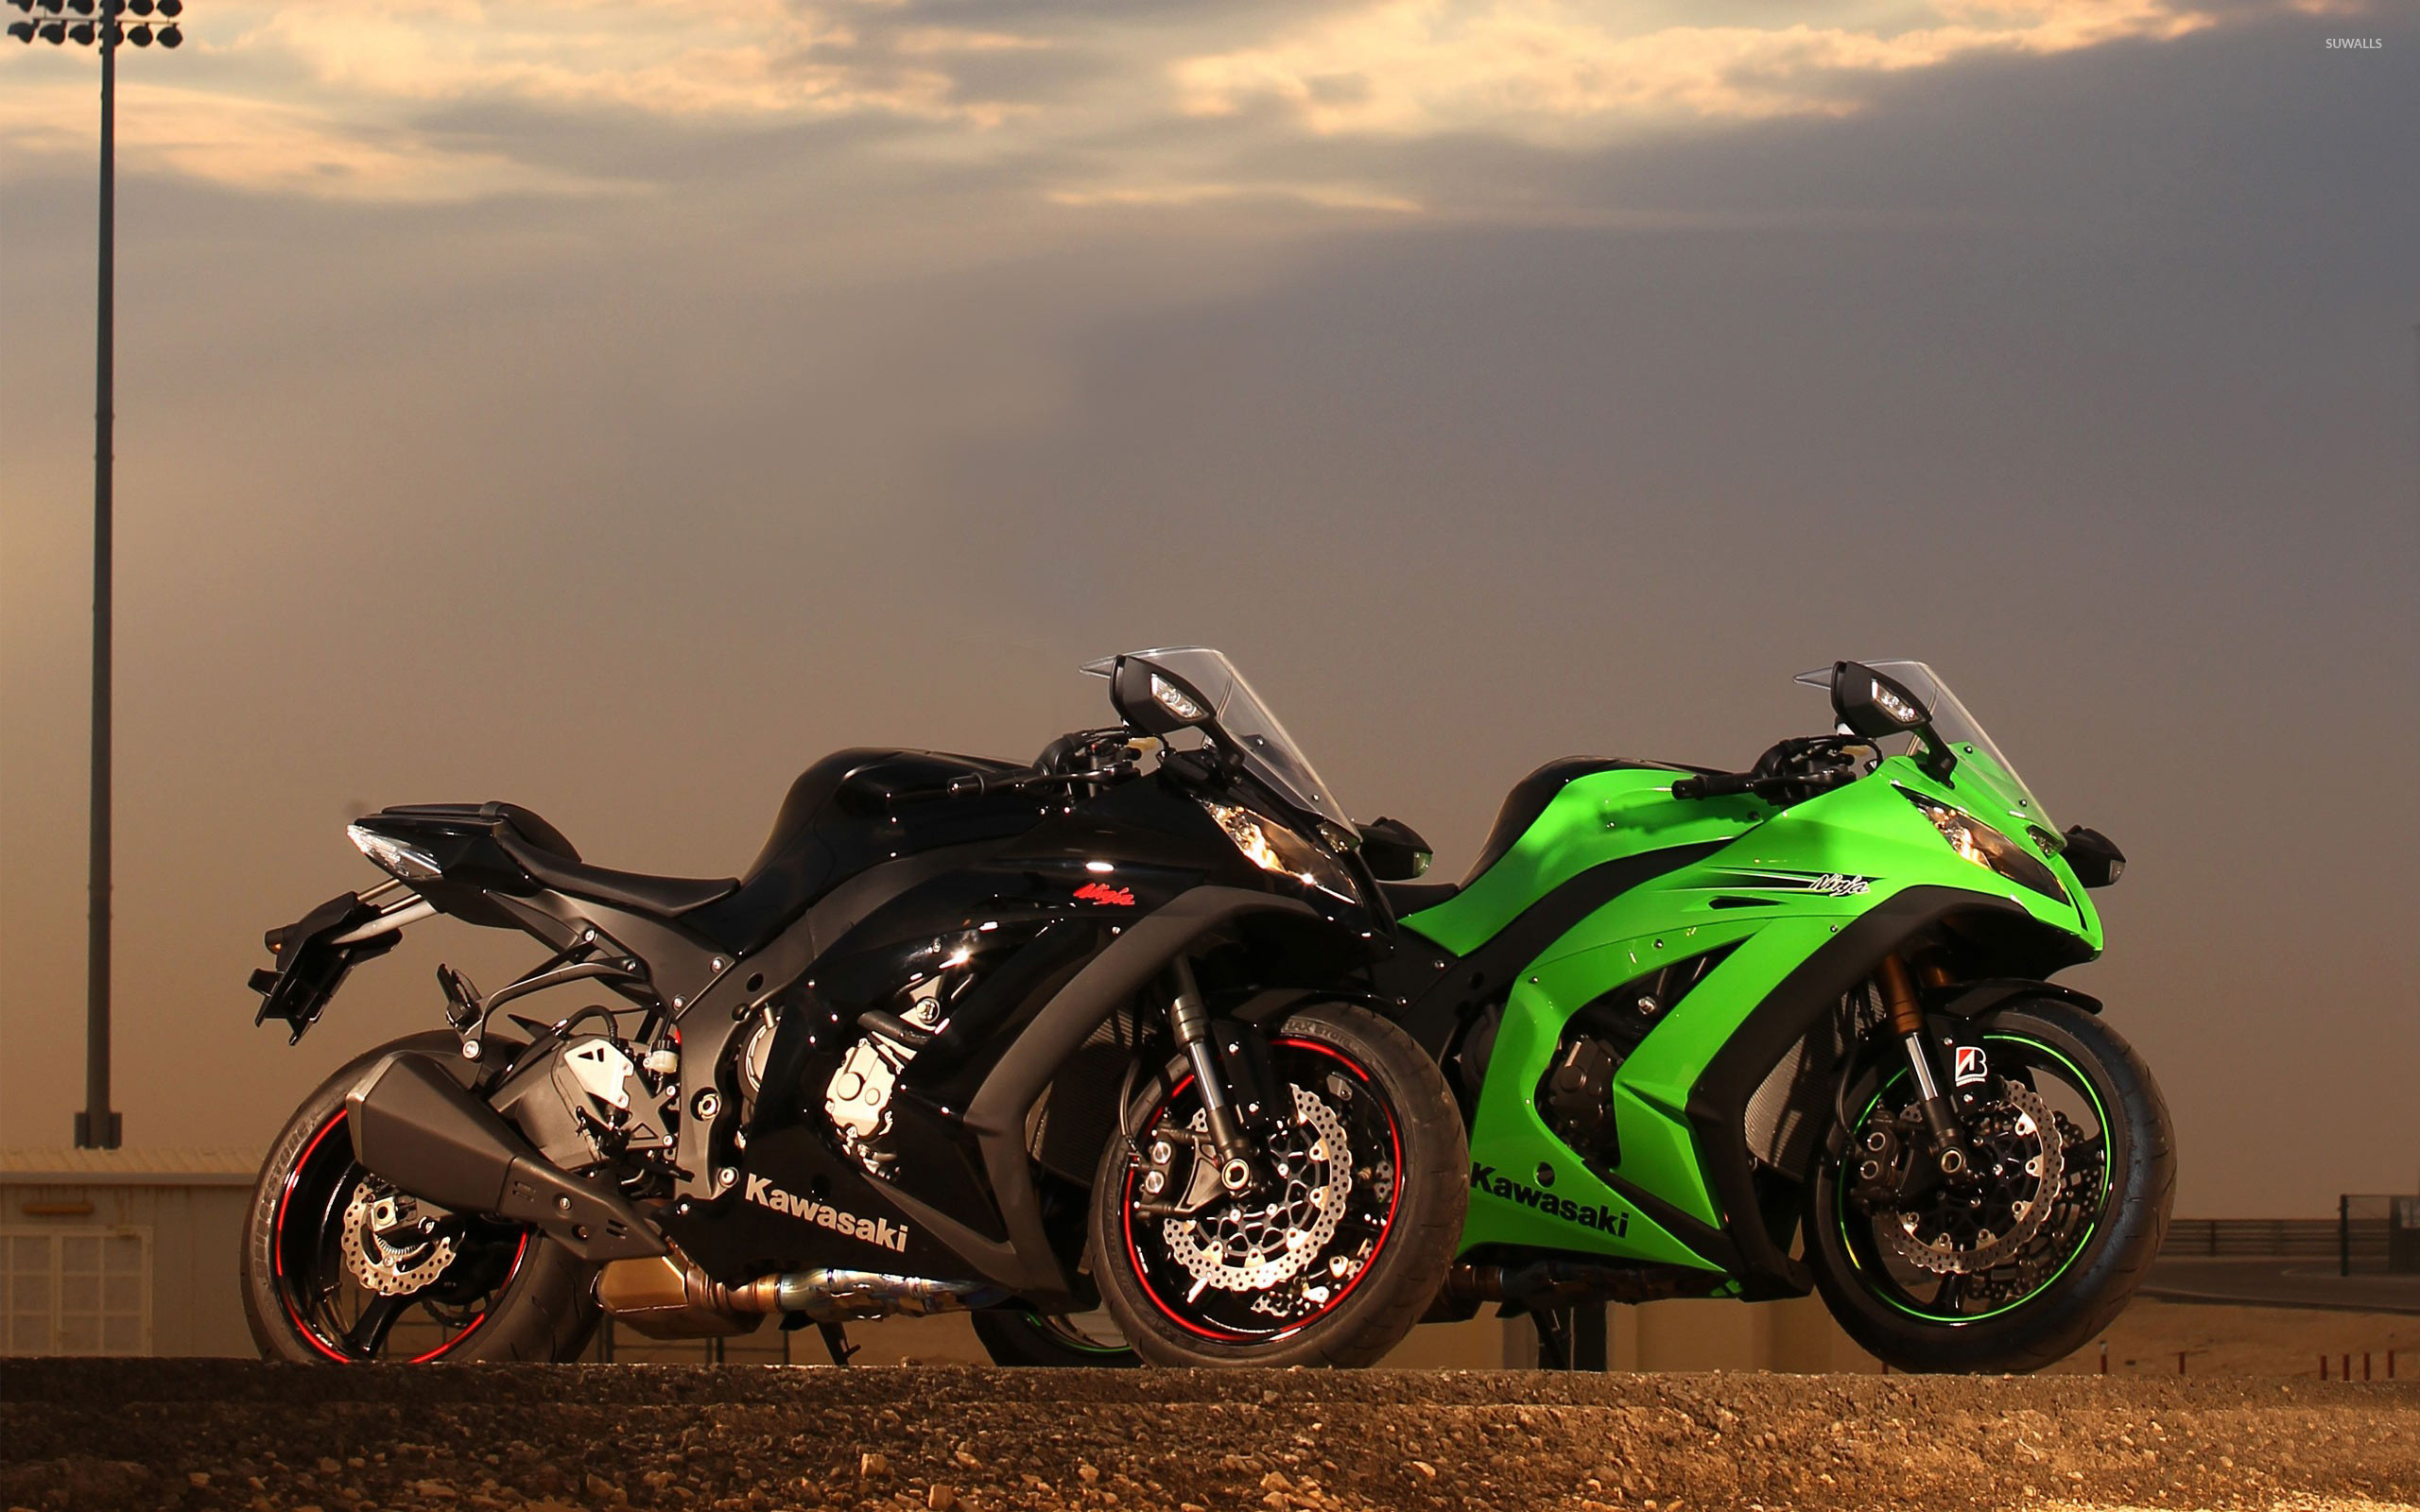 Kawasaki Ninja 1000 [3] wallpaper - Motorcycle wallpapers - #7925